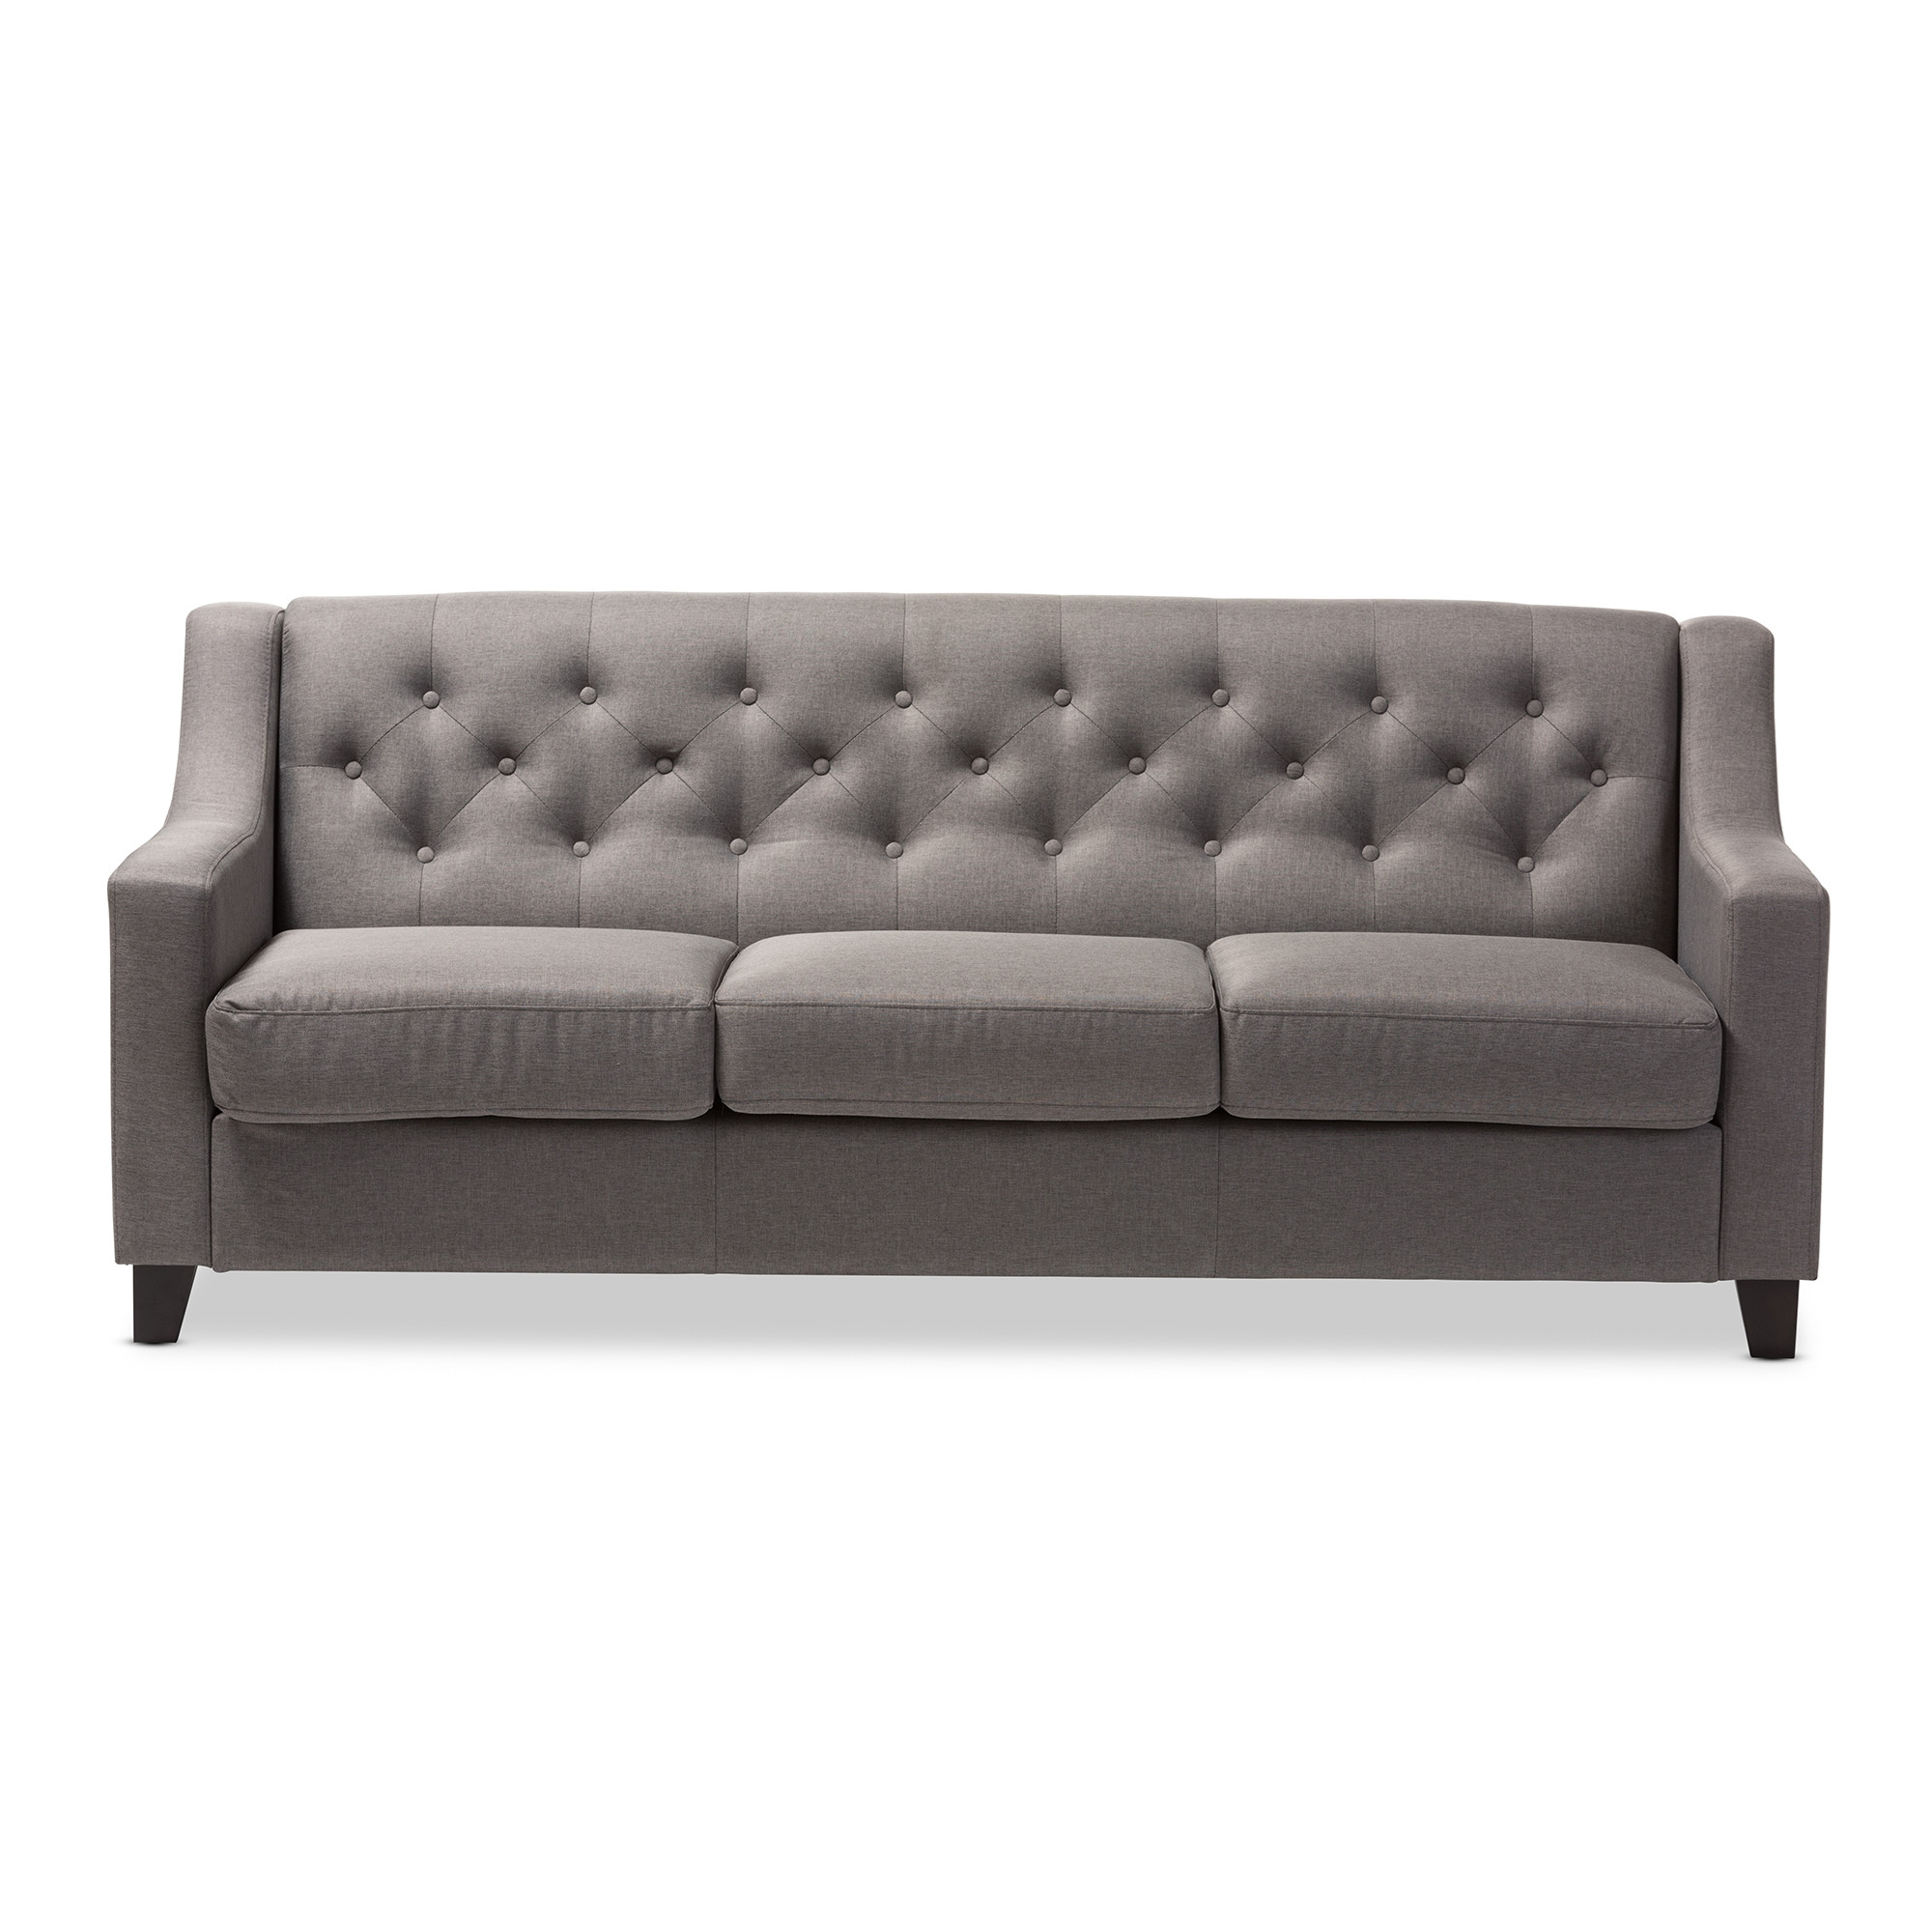 ... Baxton Studio Arcadia Modern And Contemporary Grey Fabric Upholstered  Button Tufted Living Room 3  ...